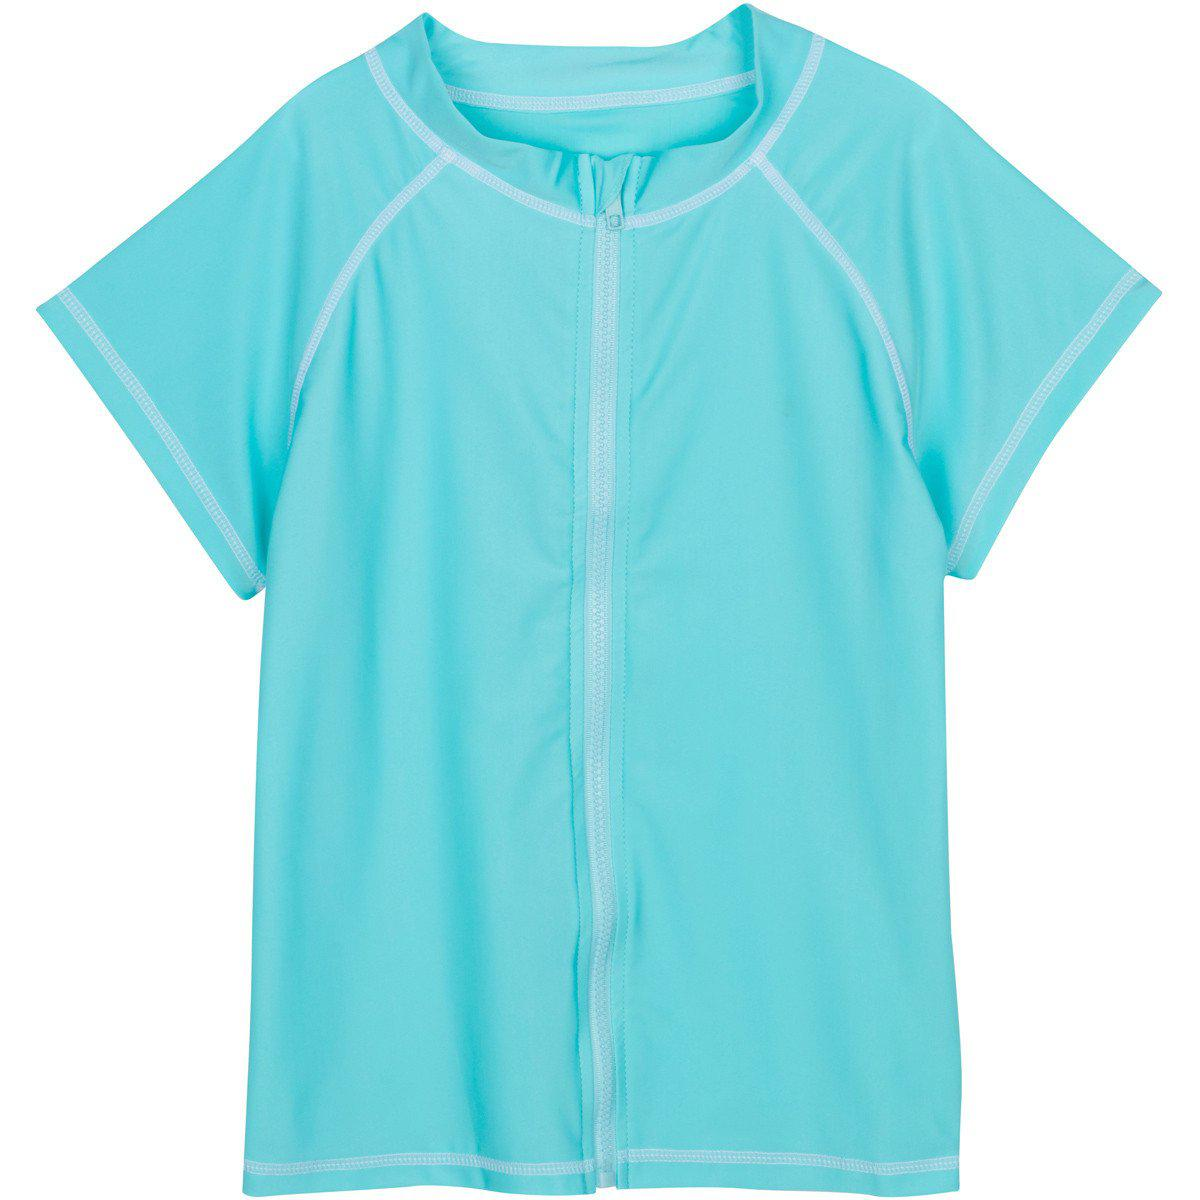 79c72d9540 Girl Zip Rash Guard Short Sleeve UPF 50+ Sun Protective - Turquoise Sweet  Splasher